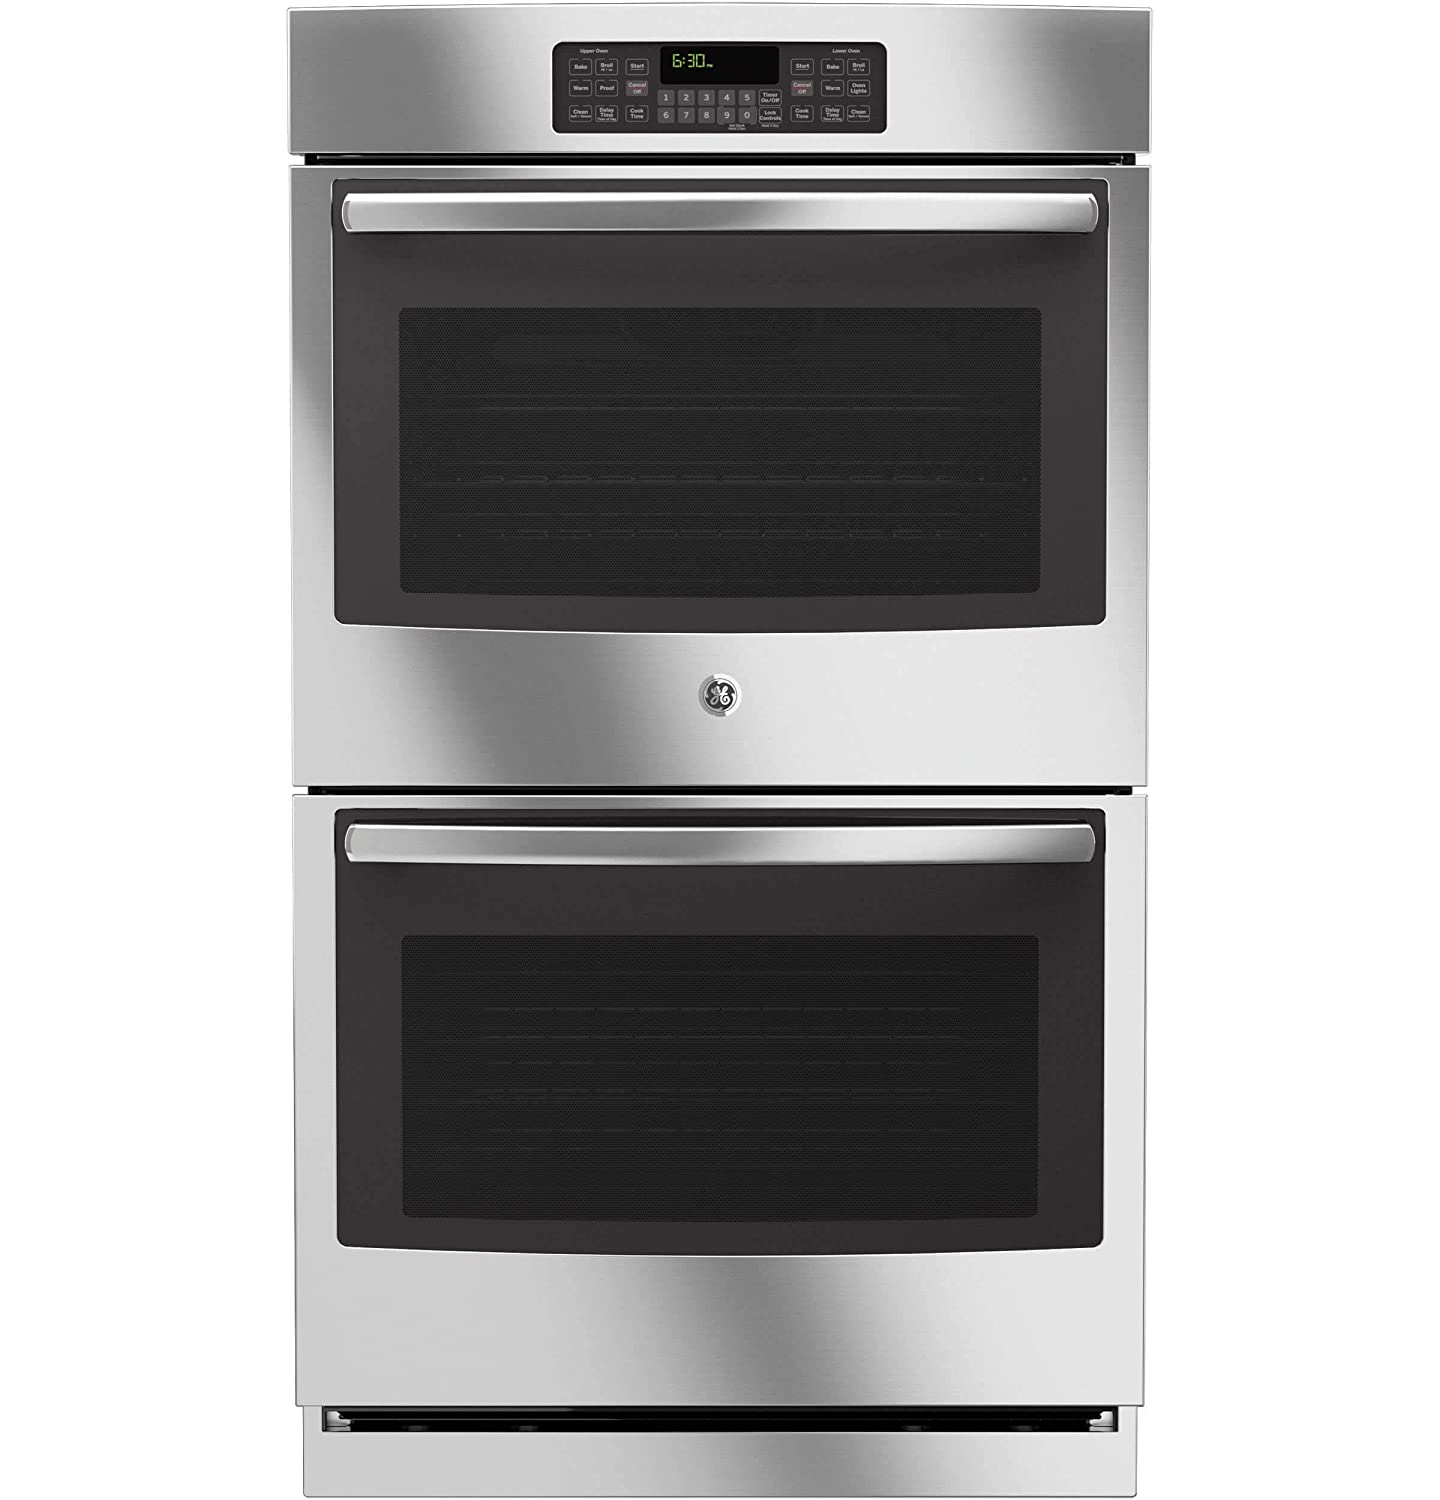 "GE JT3500SFSS 30"" Stainless Steel Electric Double Wall Oven (Certified Refurbished)"